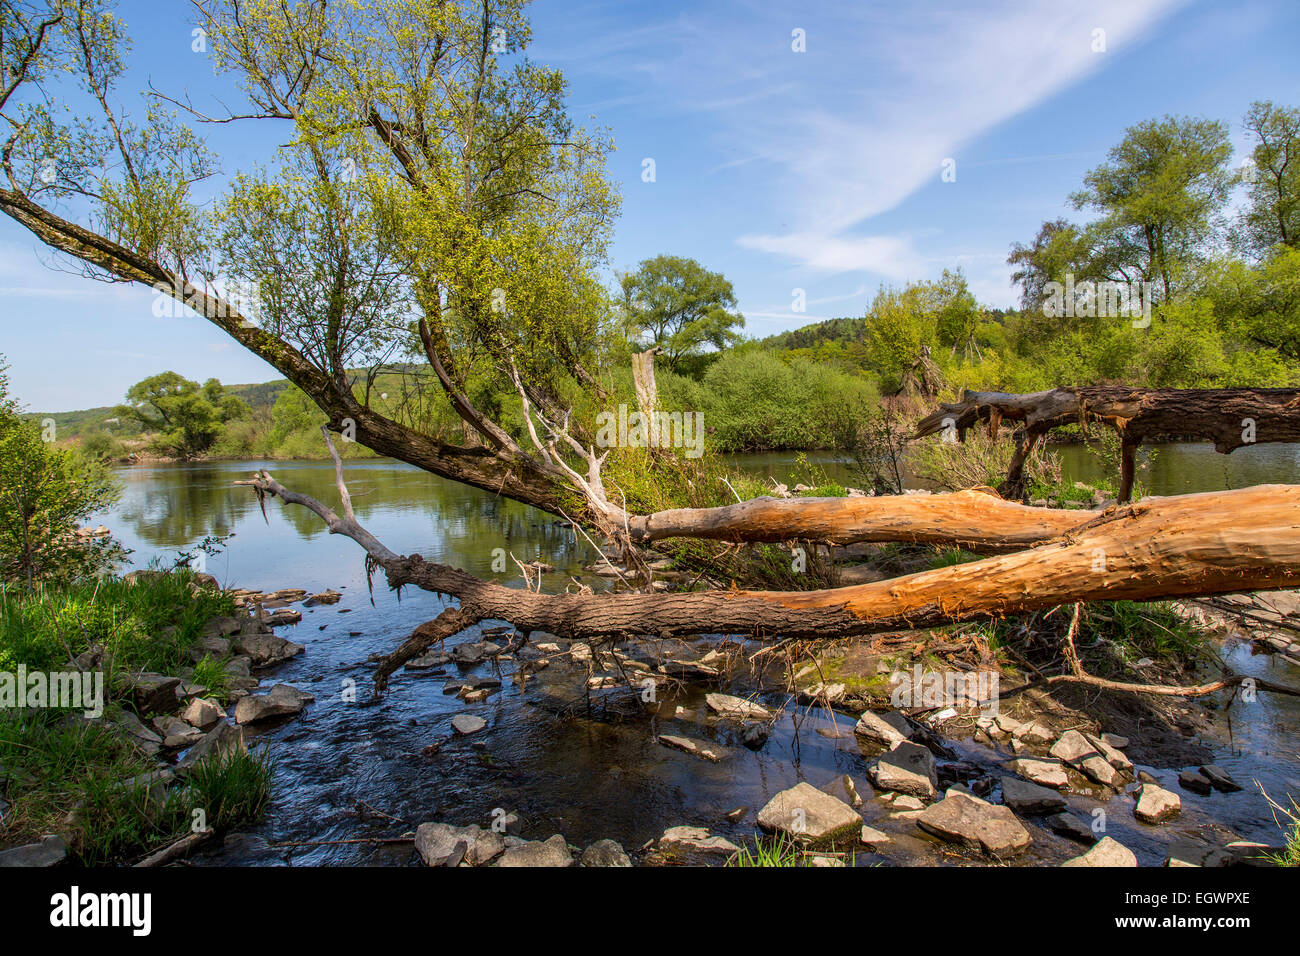 Nature preserve, river Ruhr, near Witten, Germany Stock Photo